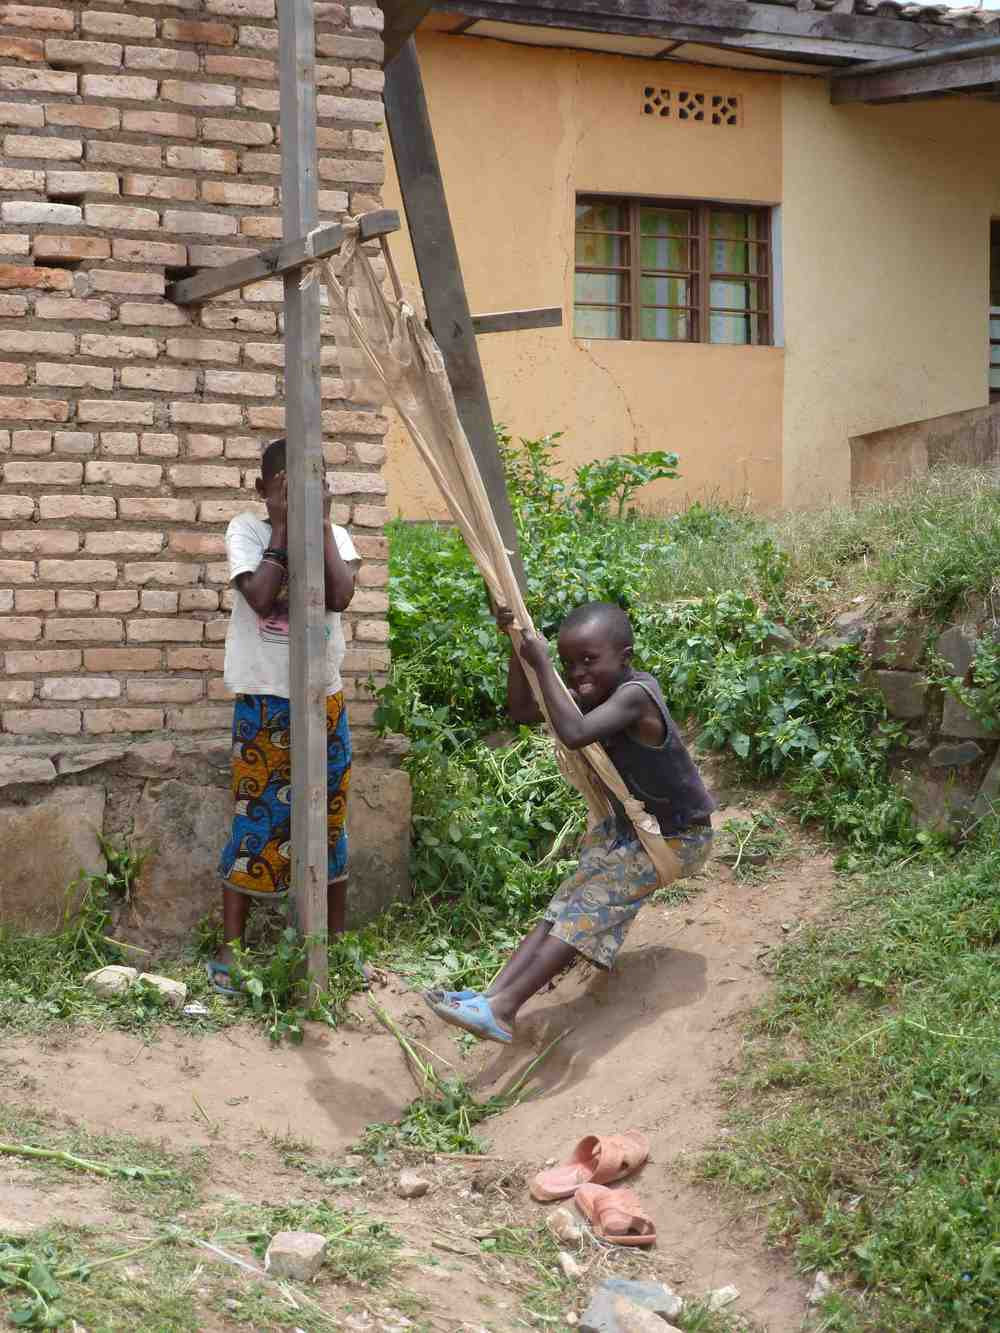 Children took advantage of materials at a construction site to invent their own swing.